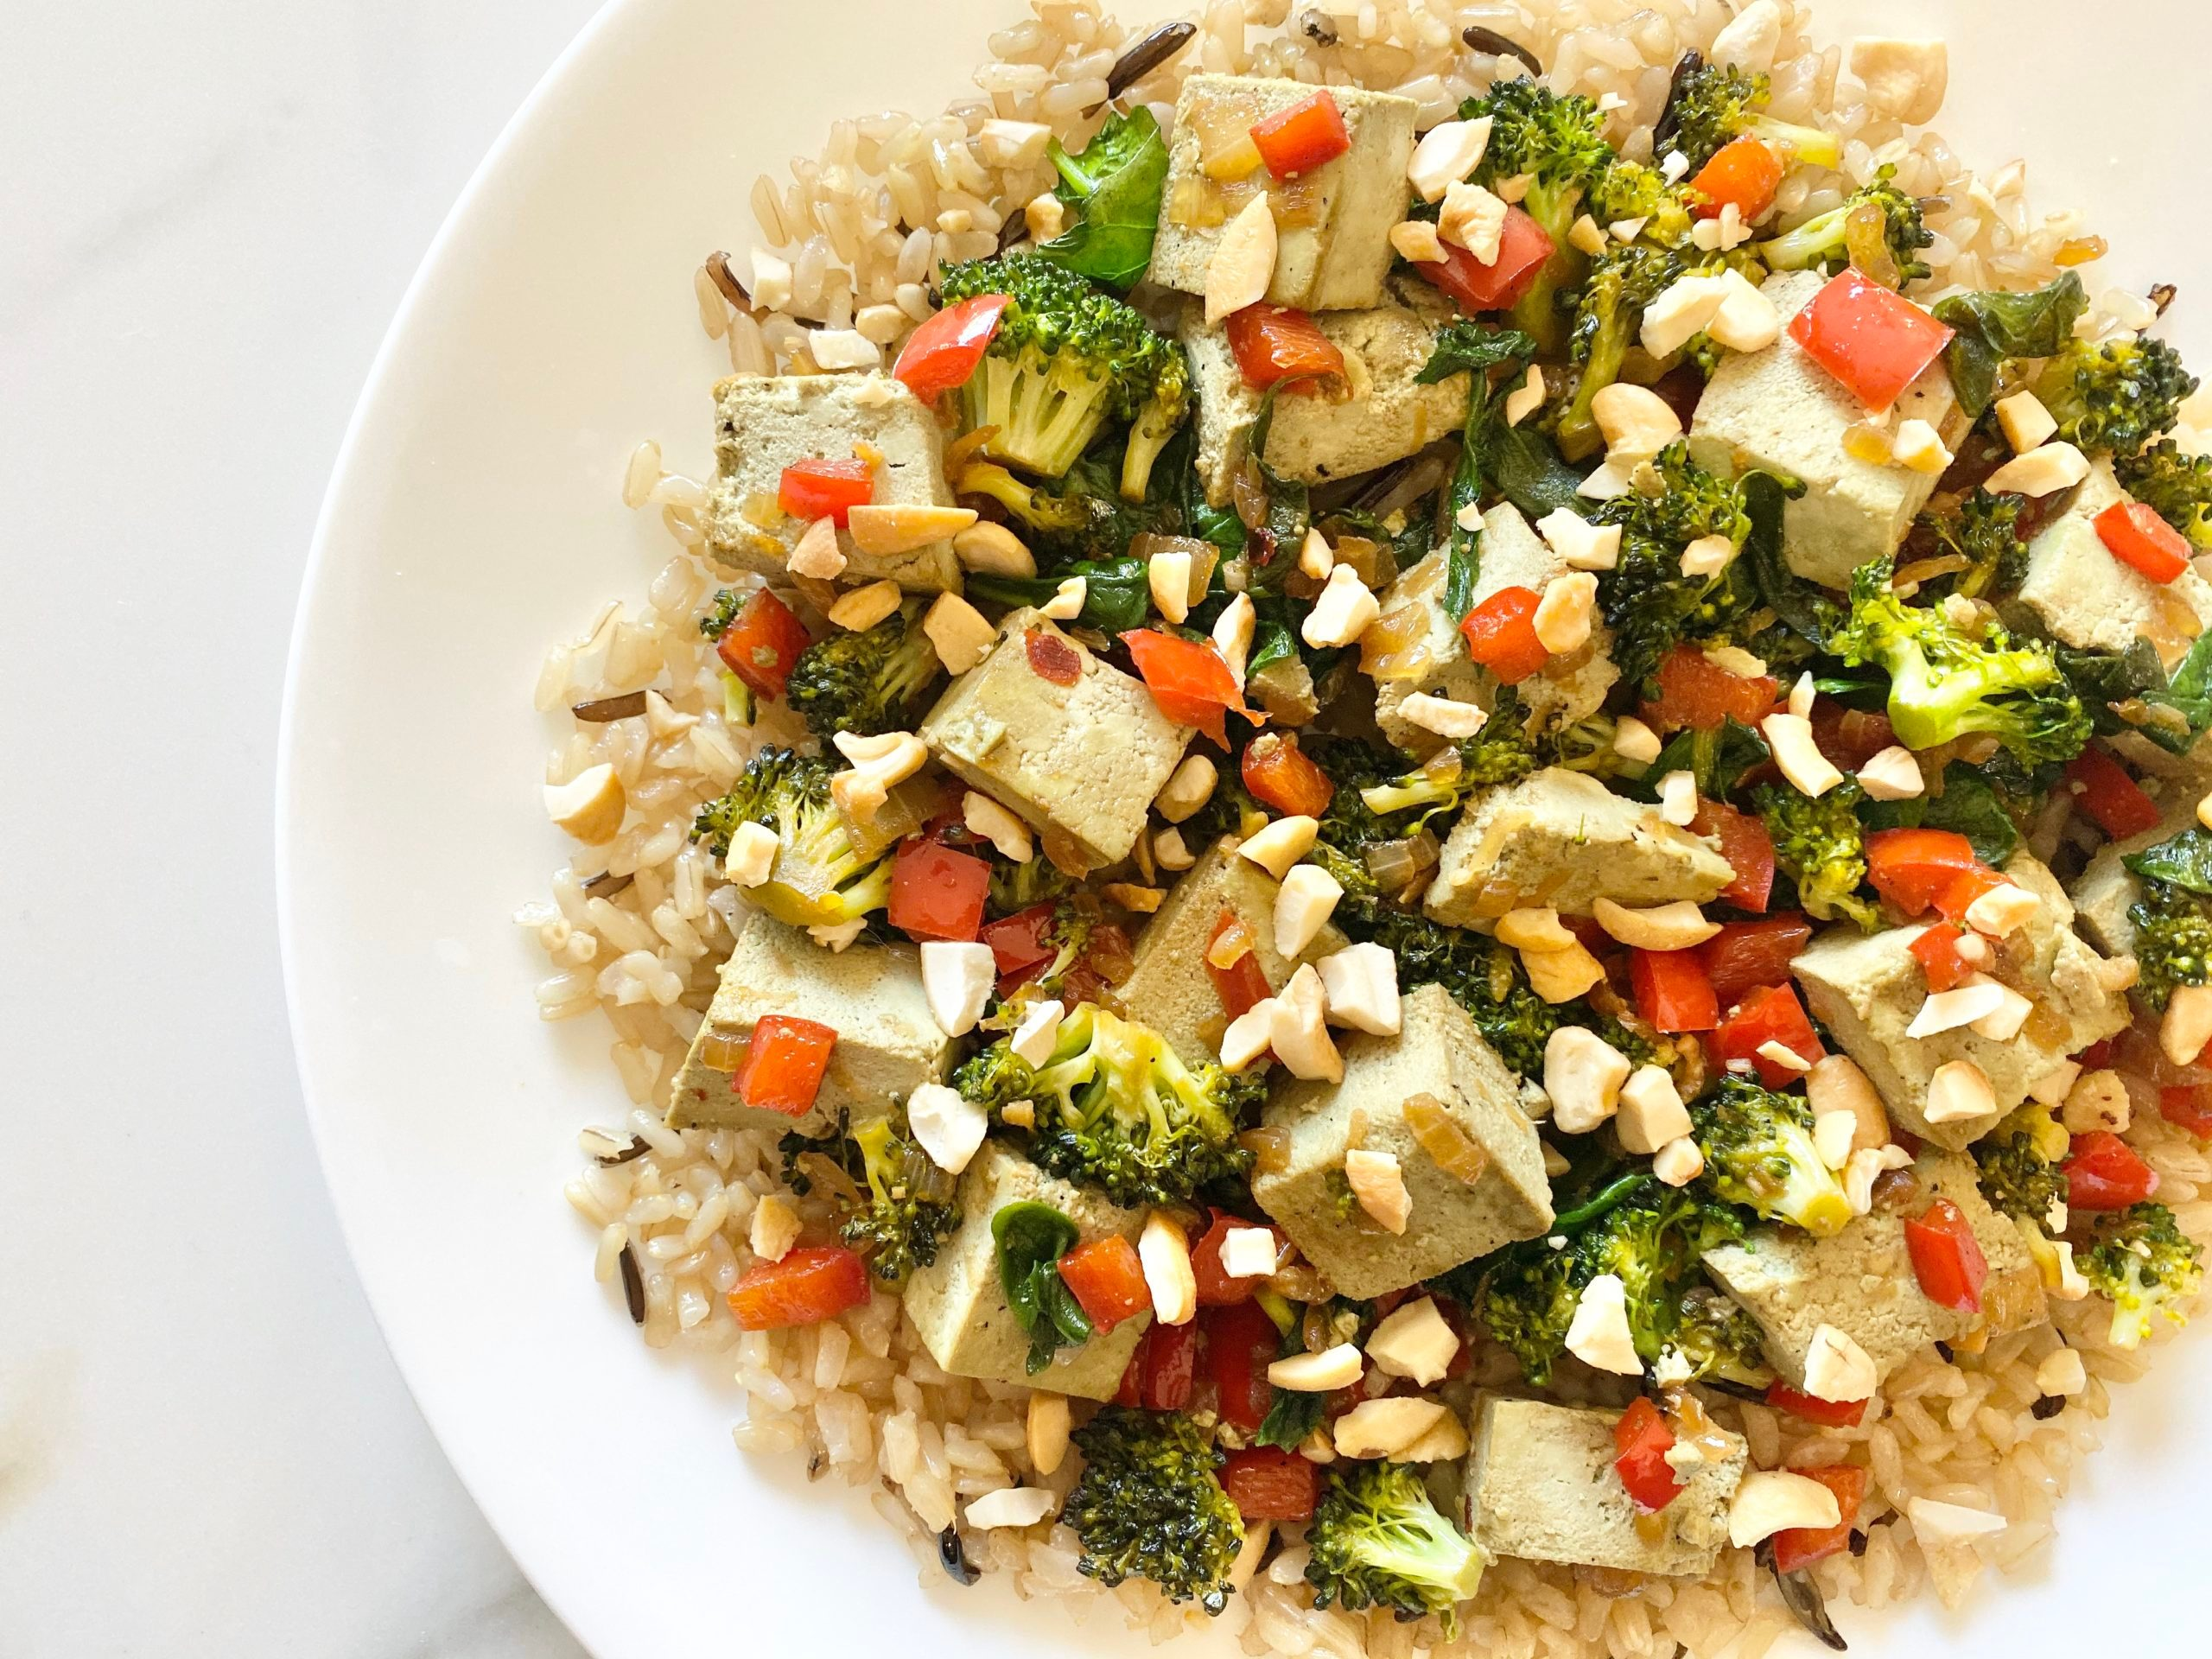 High Protein Vegan Stir Fry Recipe